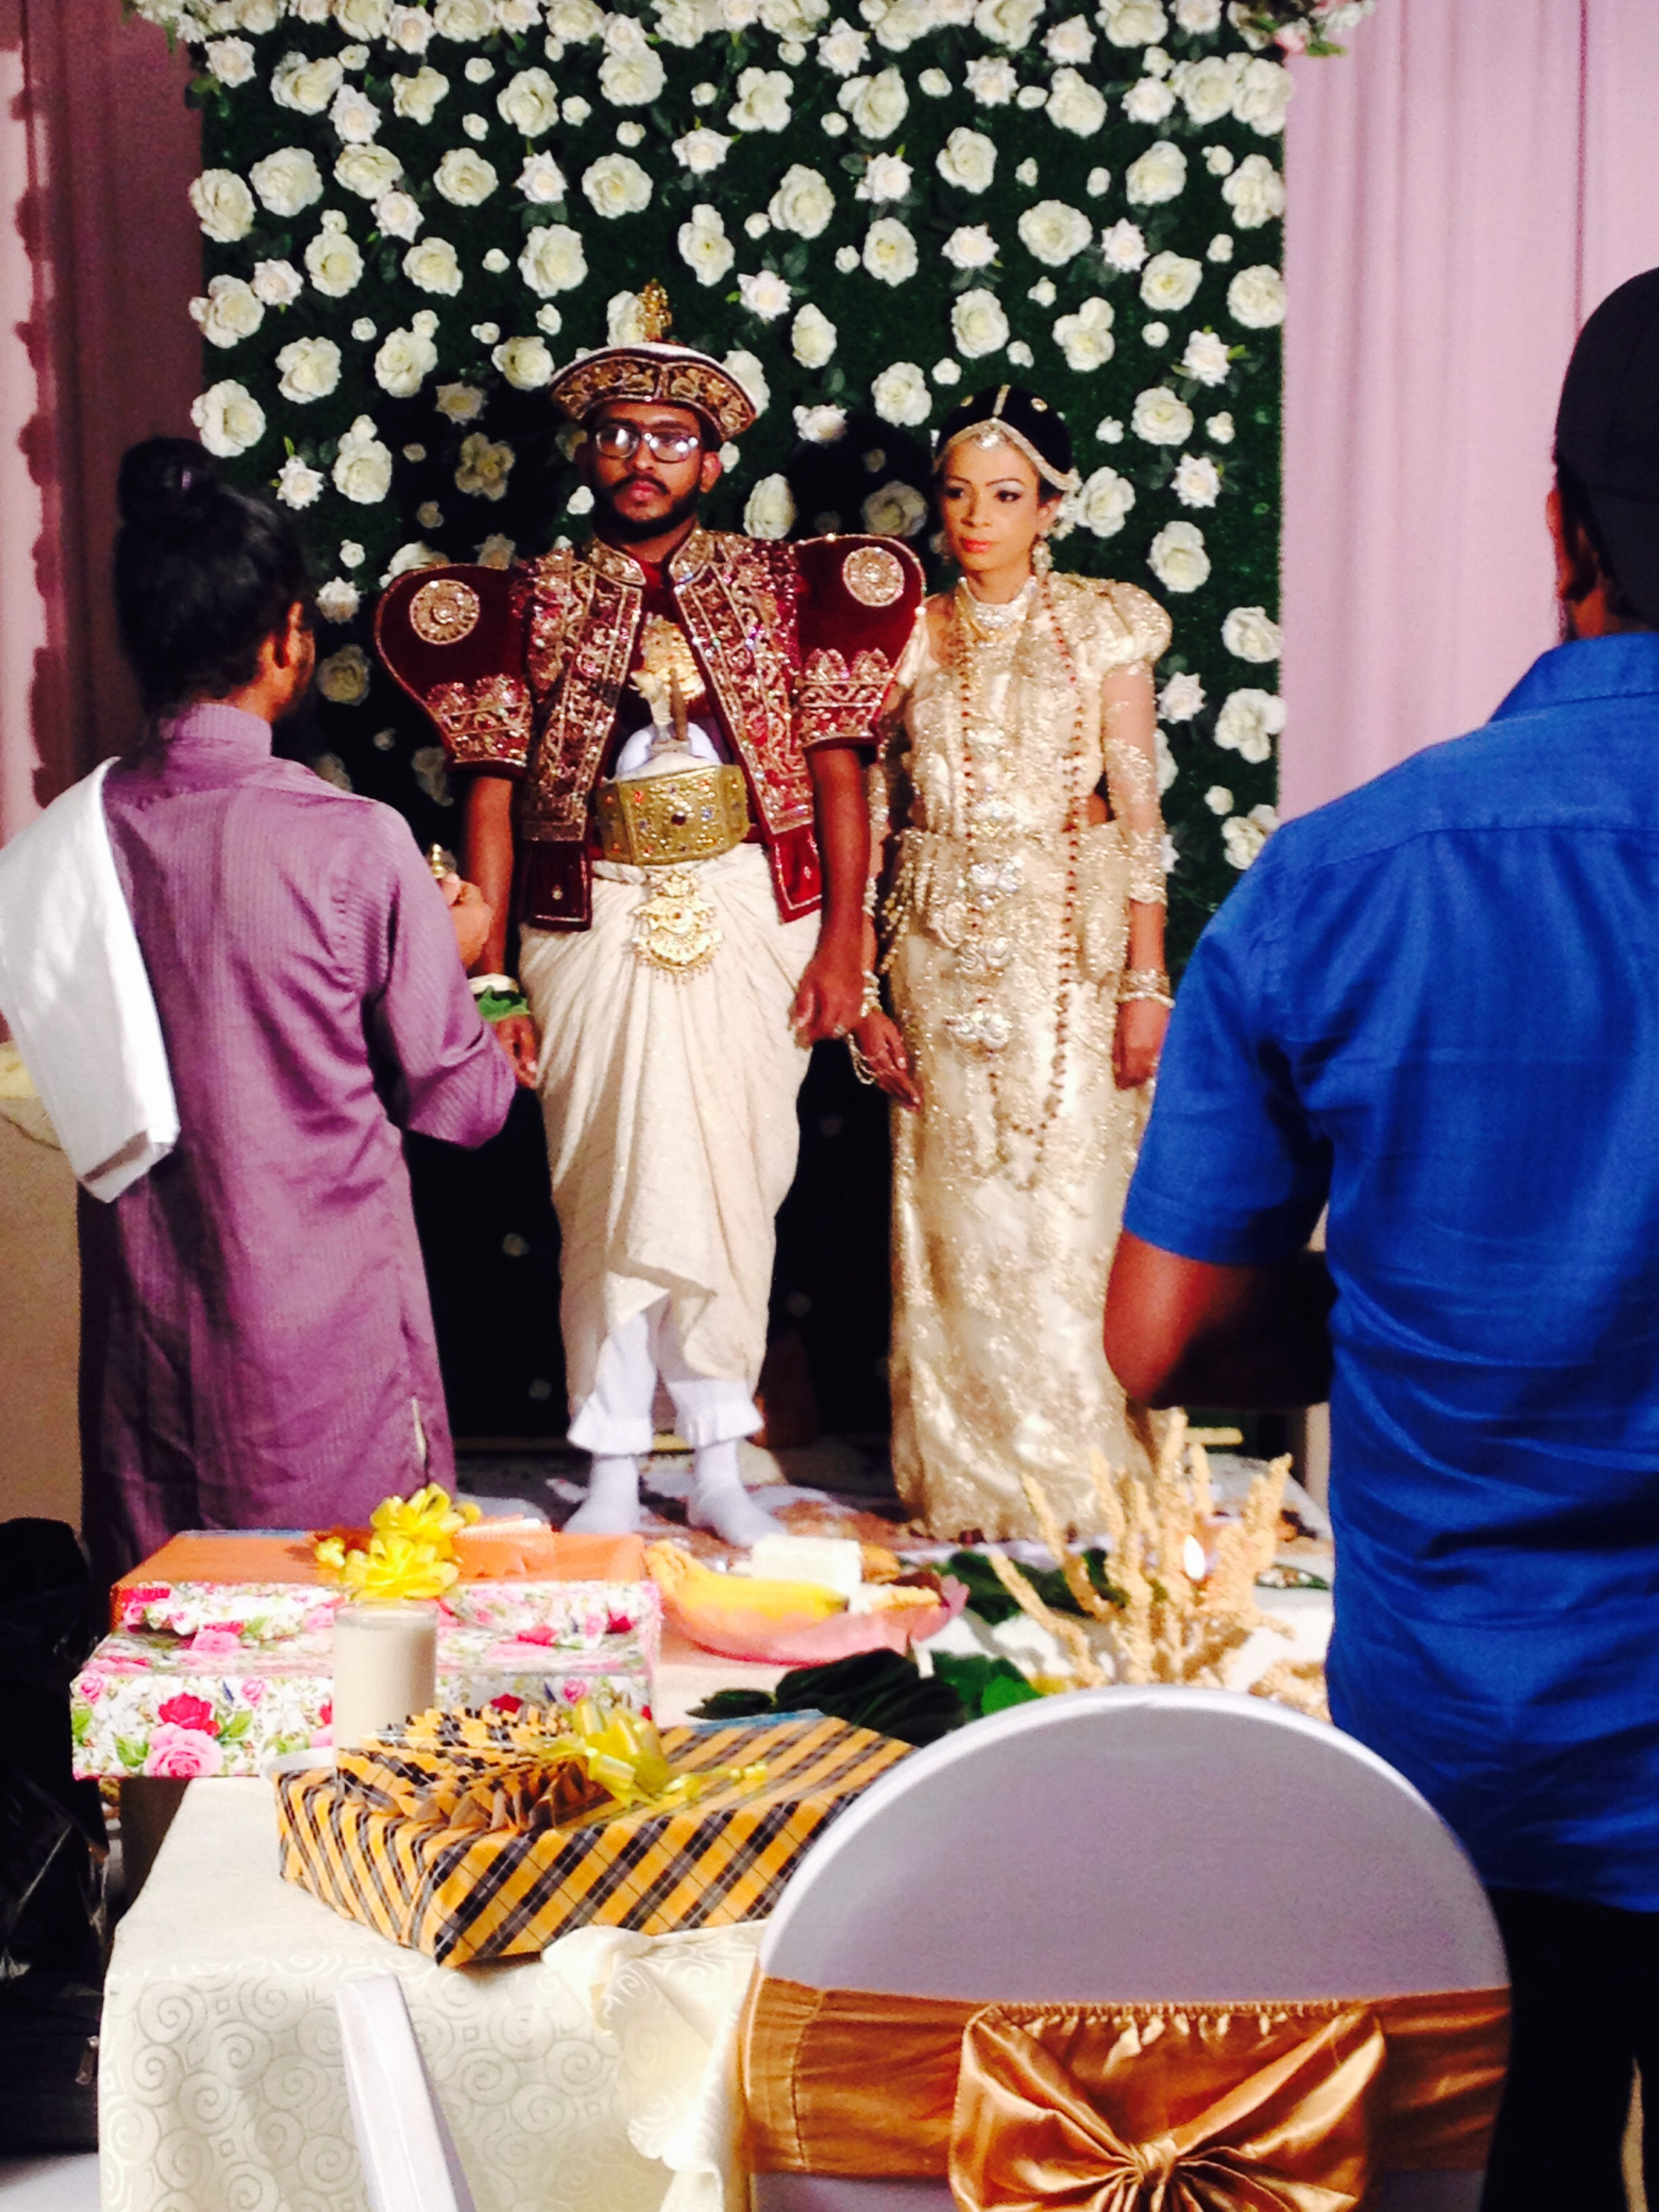 FileThis is a typical Sri Lankan wedding.jpg   Wikimedia Commons